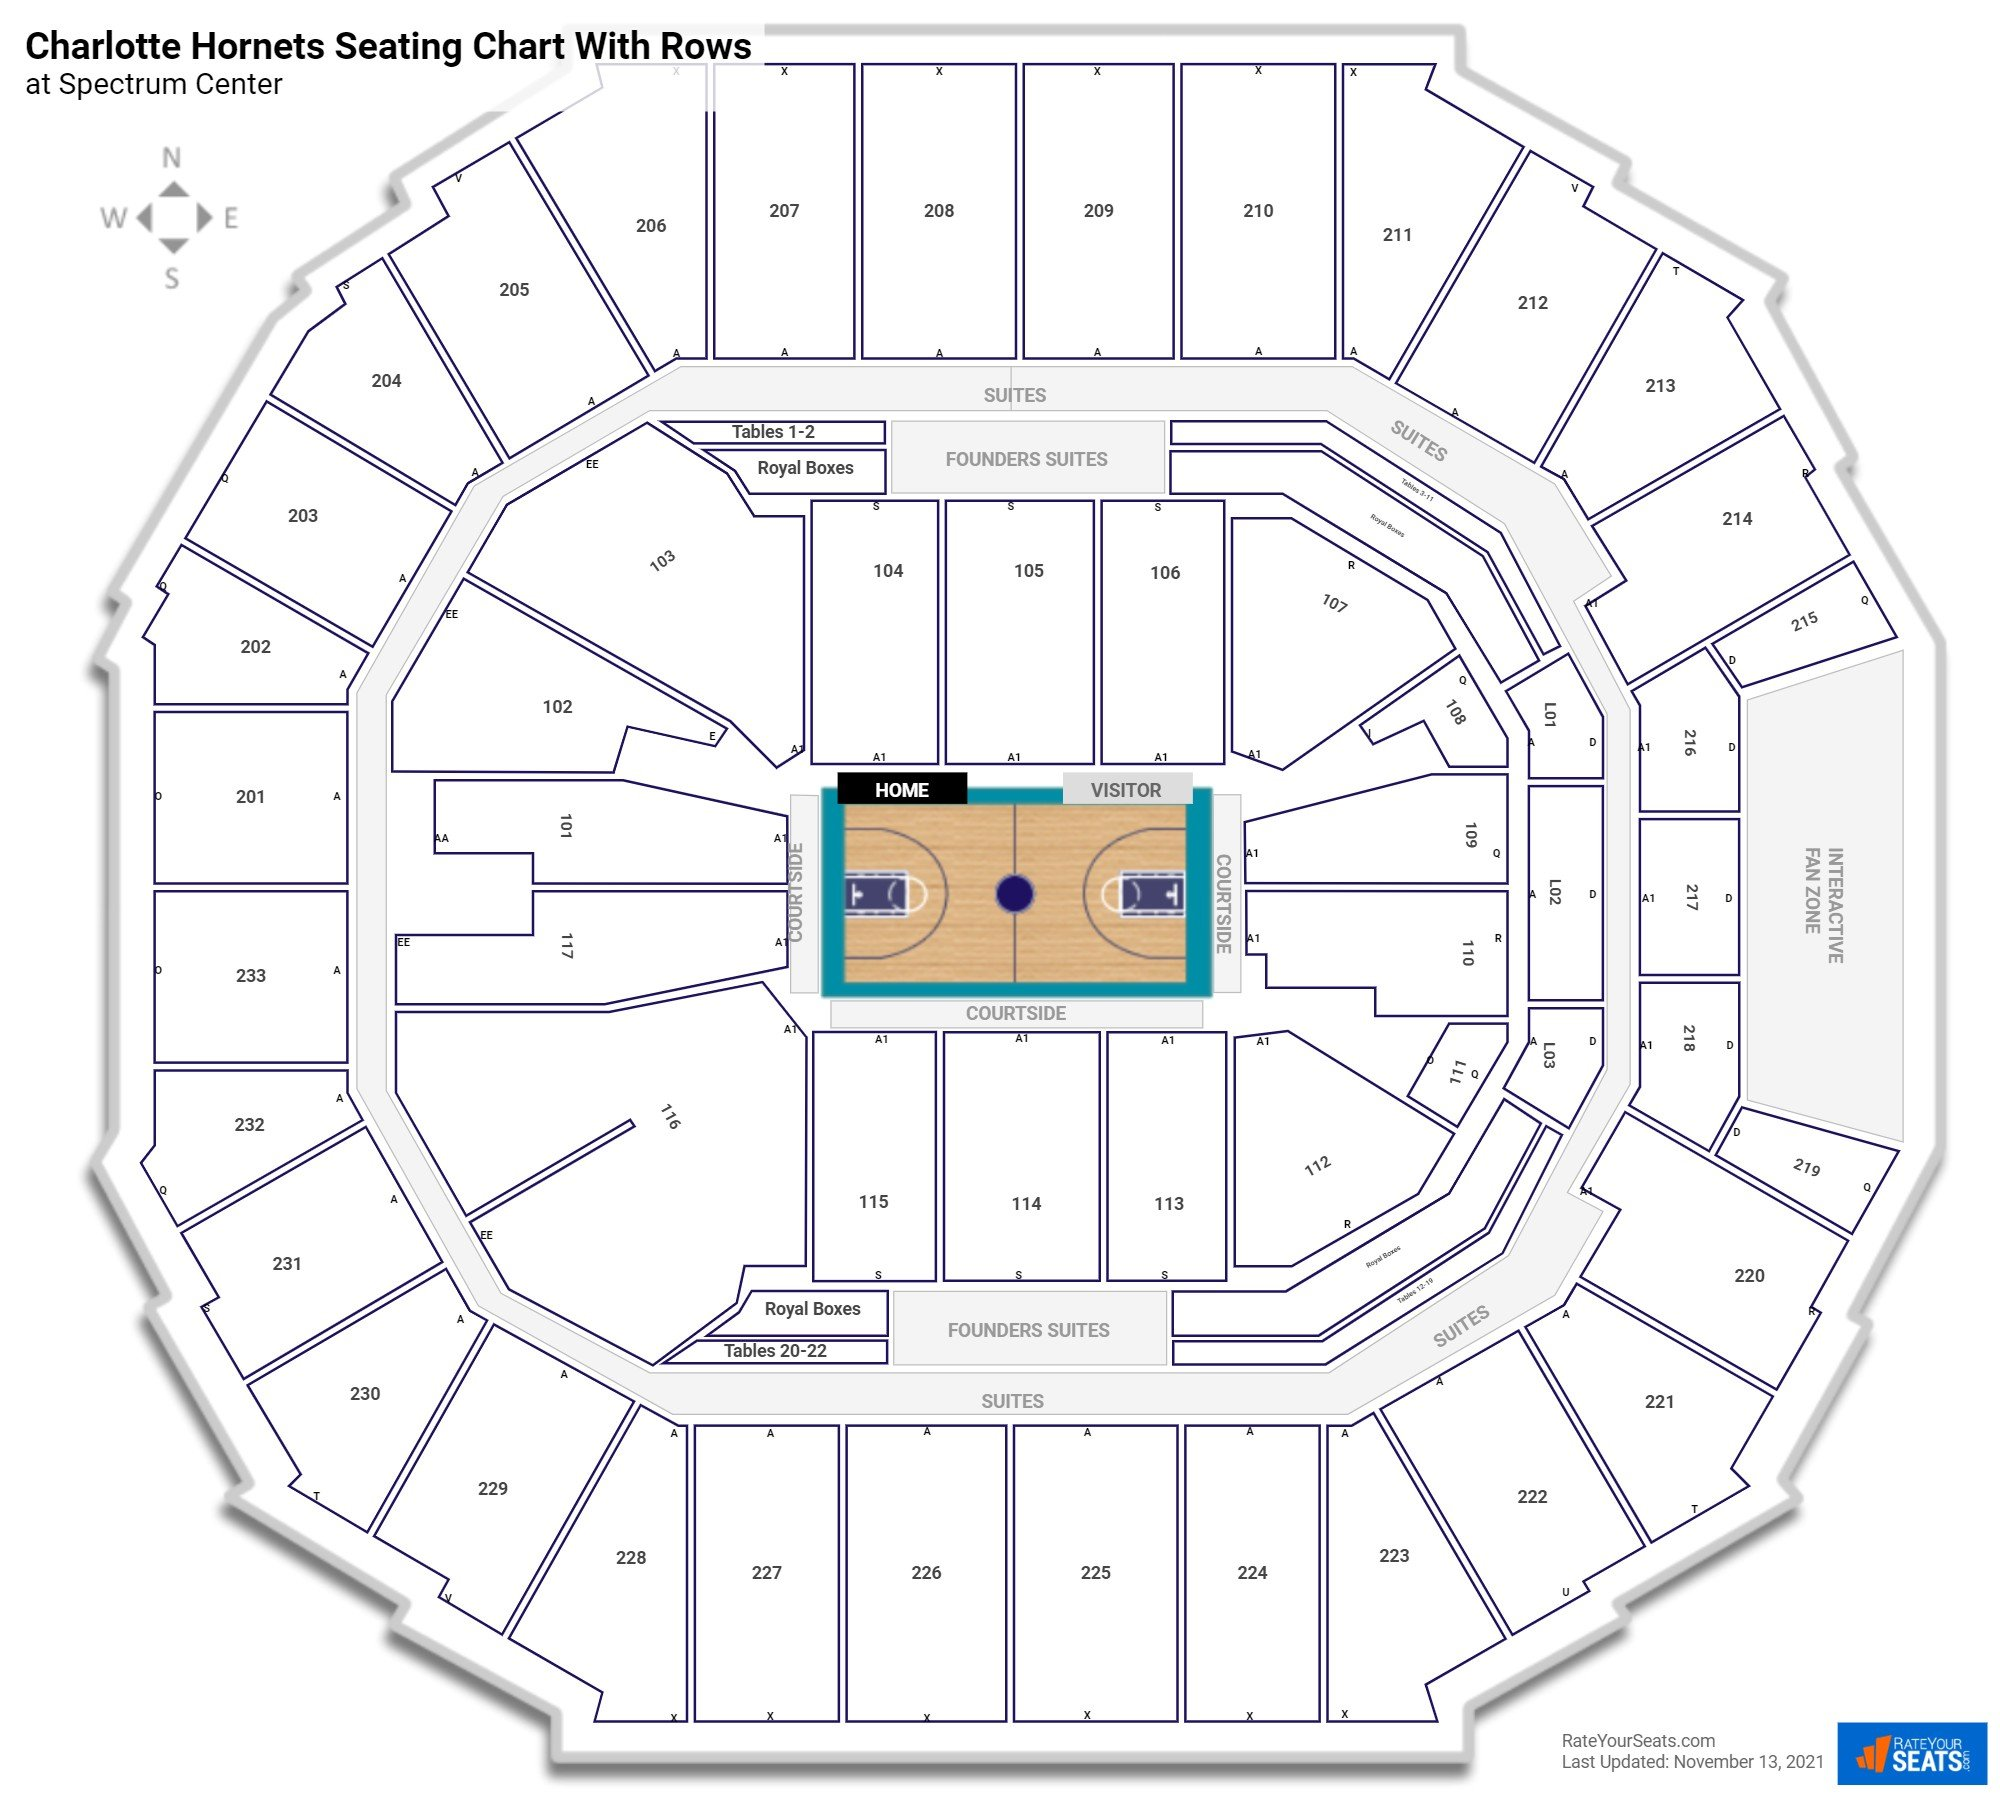 Spectrum Center seating chart with rows basketball